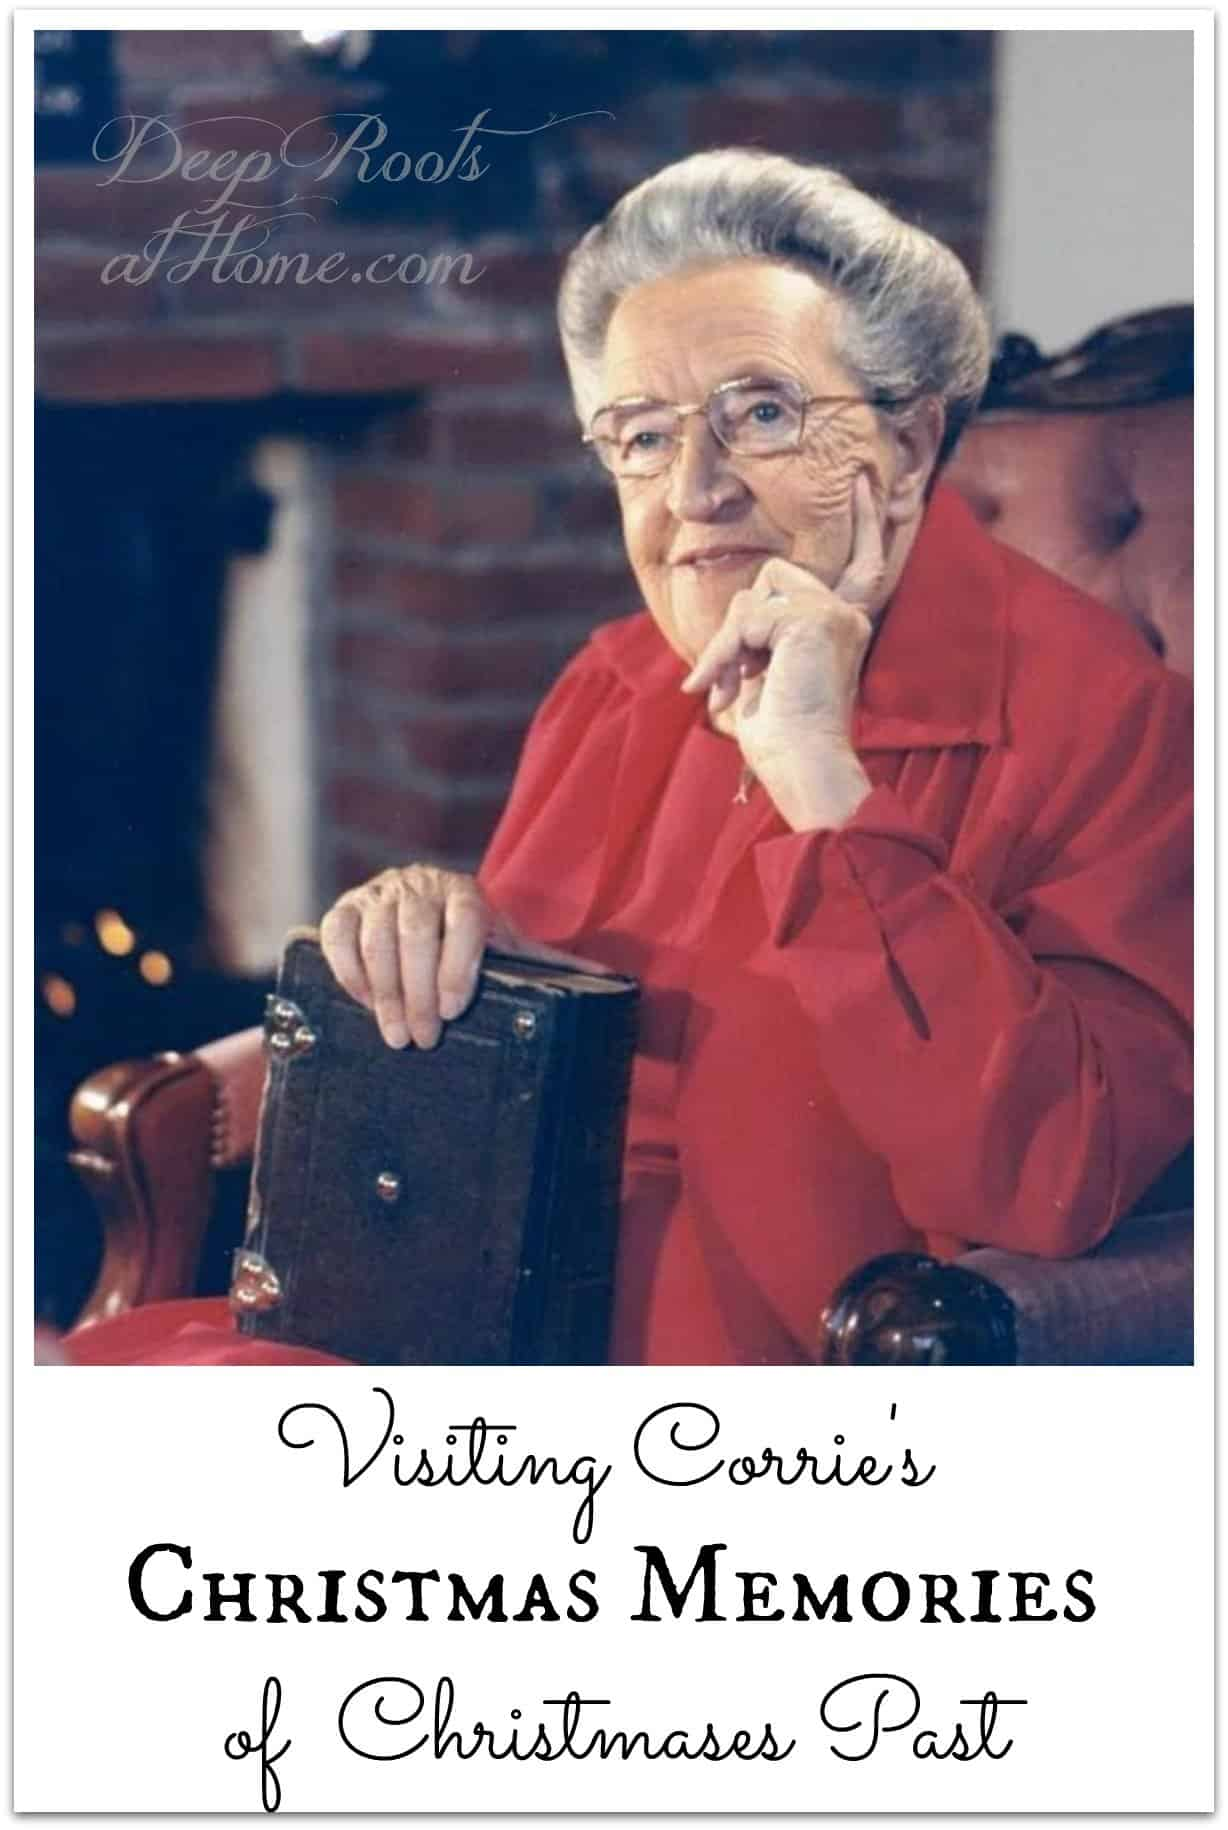 Revisiting Corrie's Christmas Memories of Christmases Past. Corrie ten Boom in a red suit